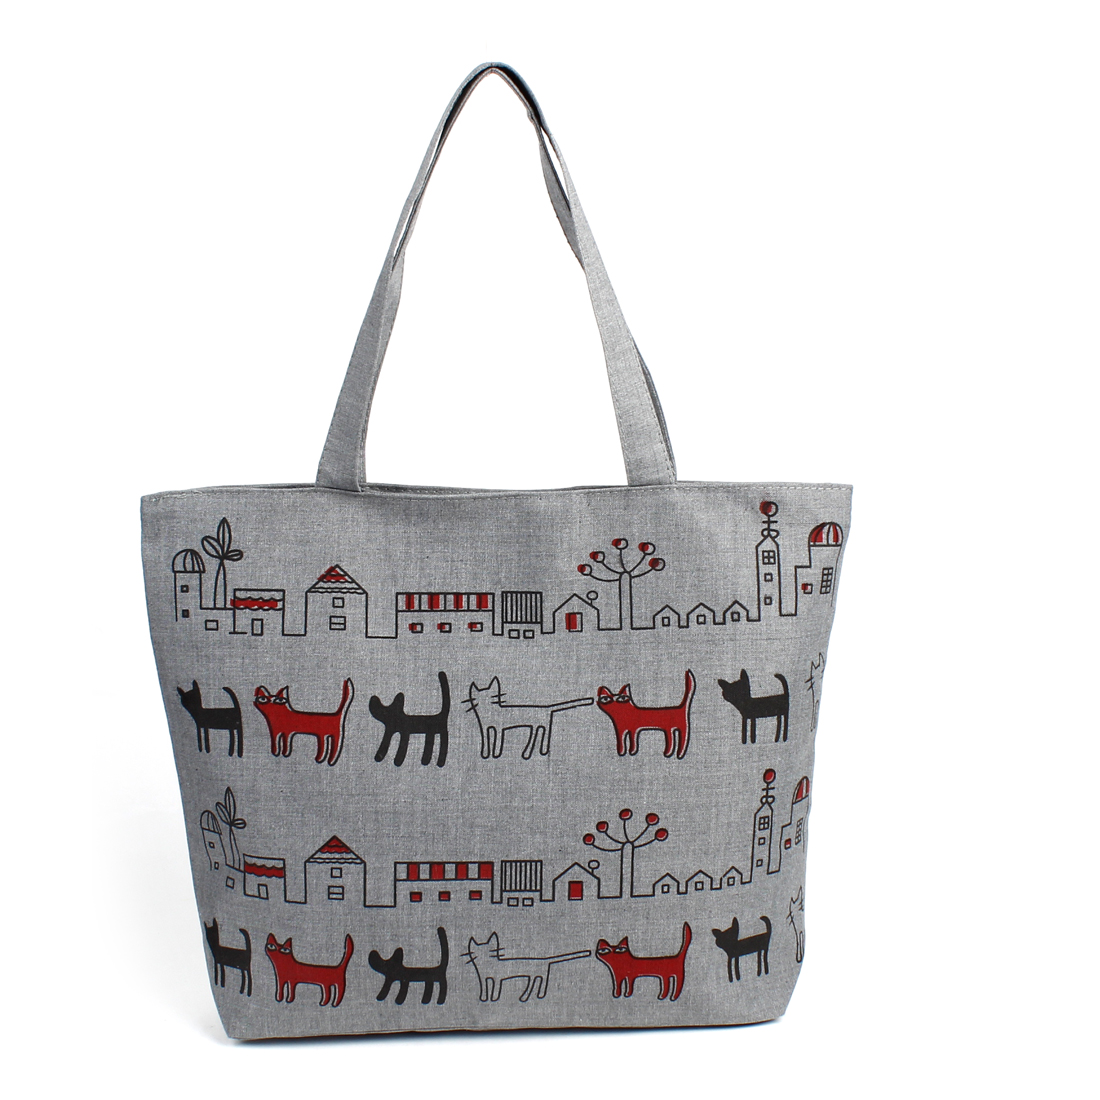 Lady Black Red Cat Print Nylon Lining Zip Up Shopping Handbag Bag Gray